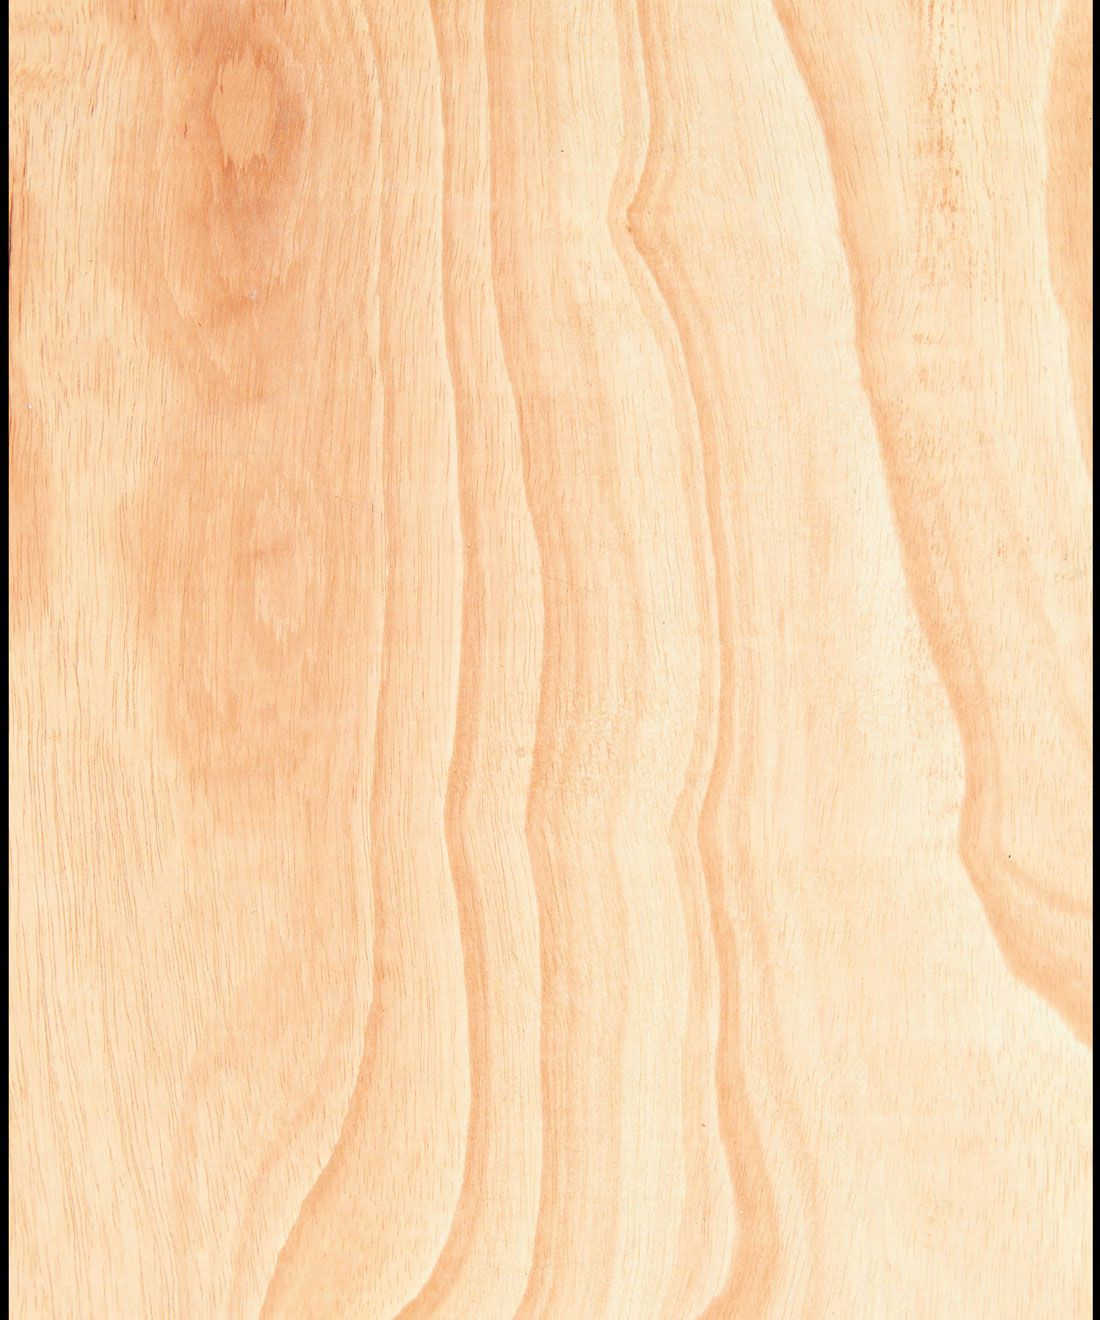 Ply Wood Wallpaper